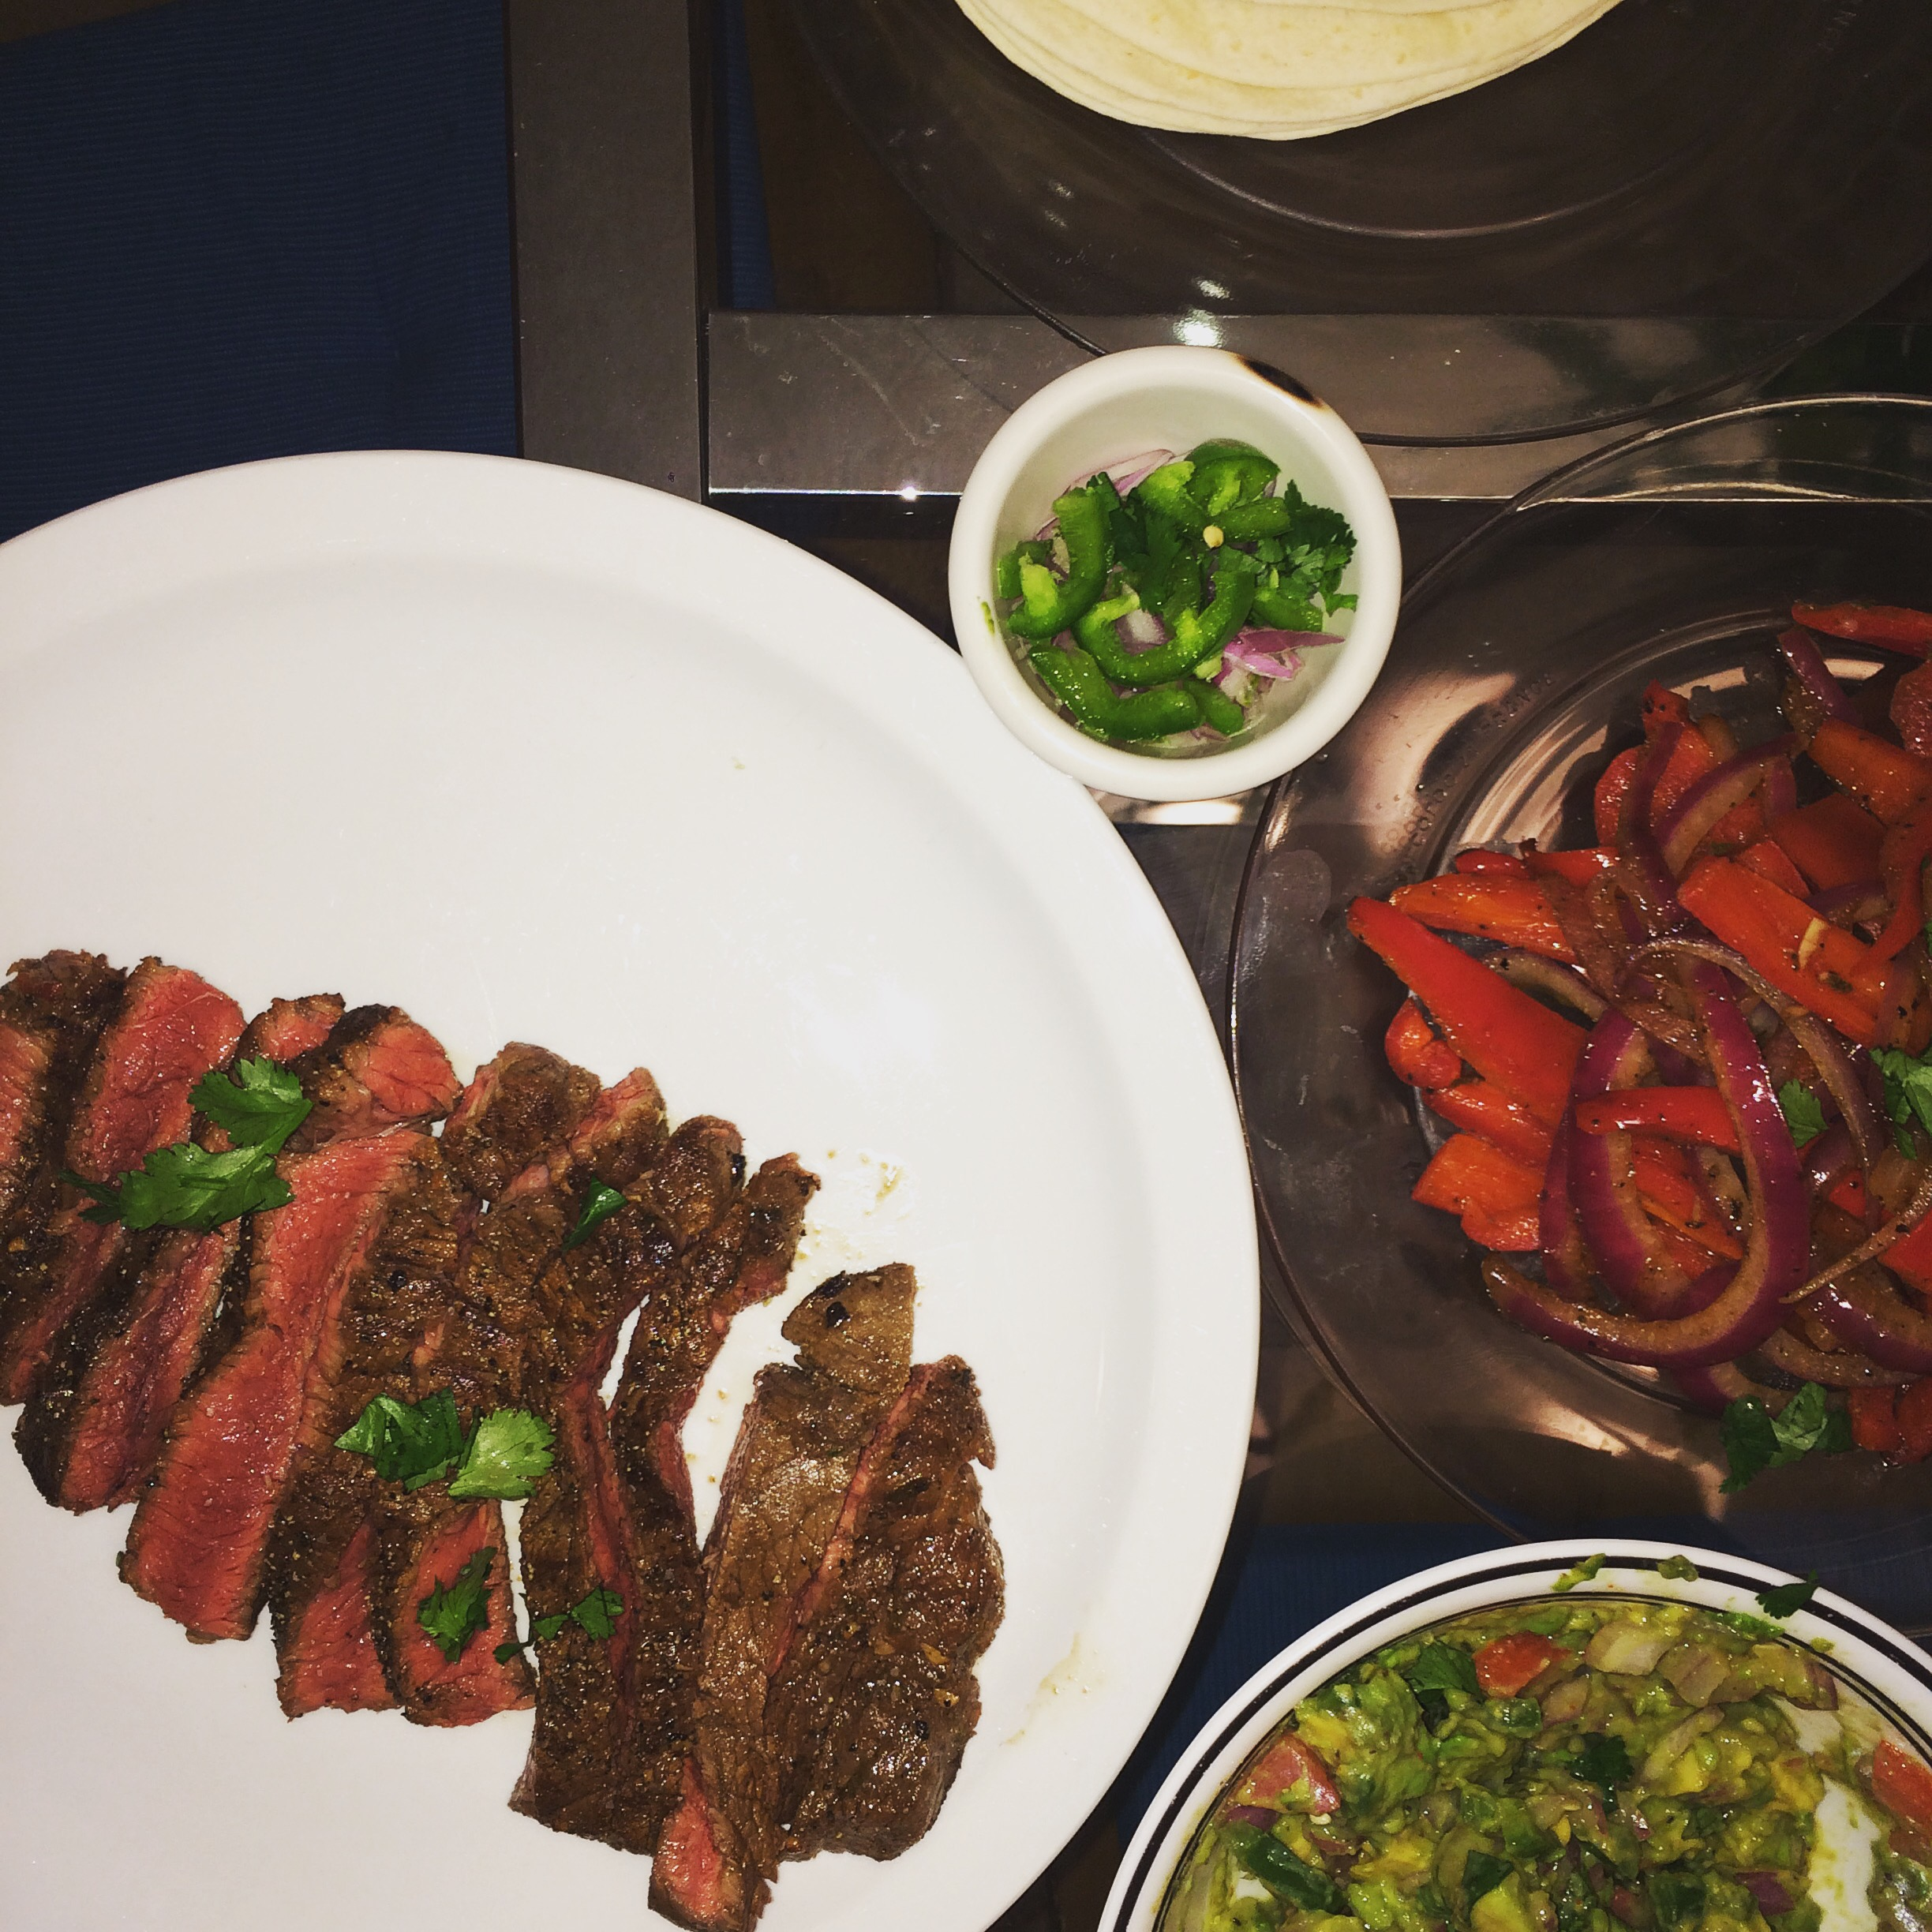 Blue apron unicorn - Some Sites I Absolutely Love Looking For Dishes To Make Are Blue Apron Epicurious Carnal Dish Pintrest And Bon Appetit Take A Look At Some Pics